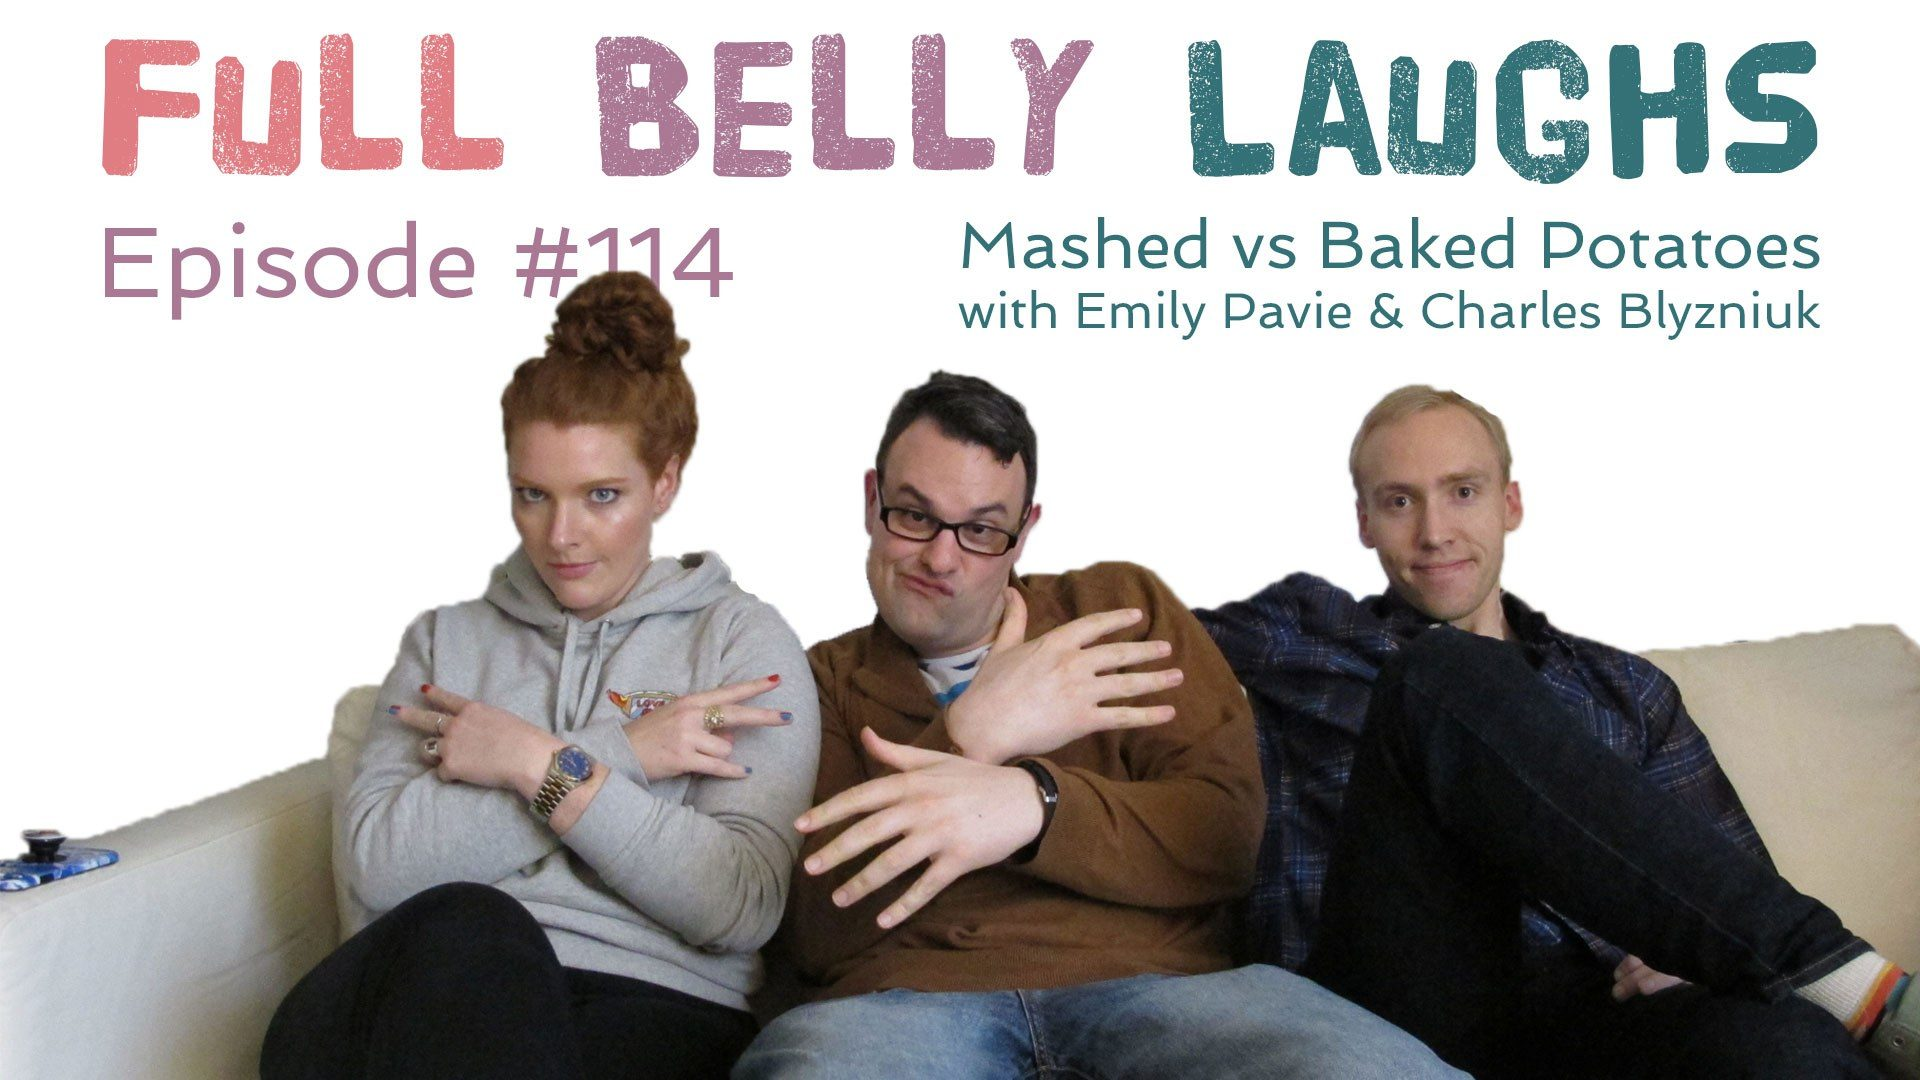 full belly laughs podcast episode 114 mashed vs baked potatoes audio artwork